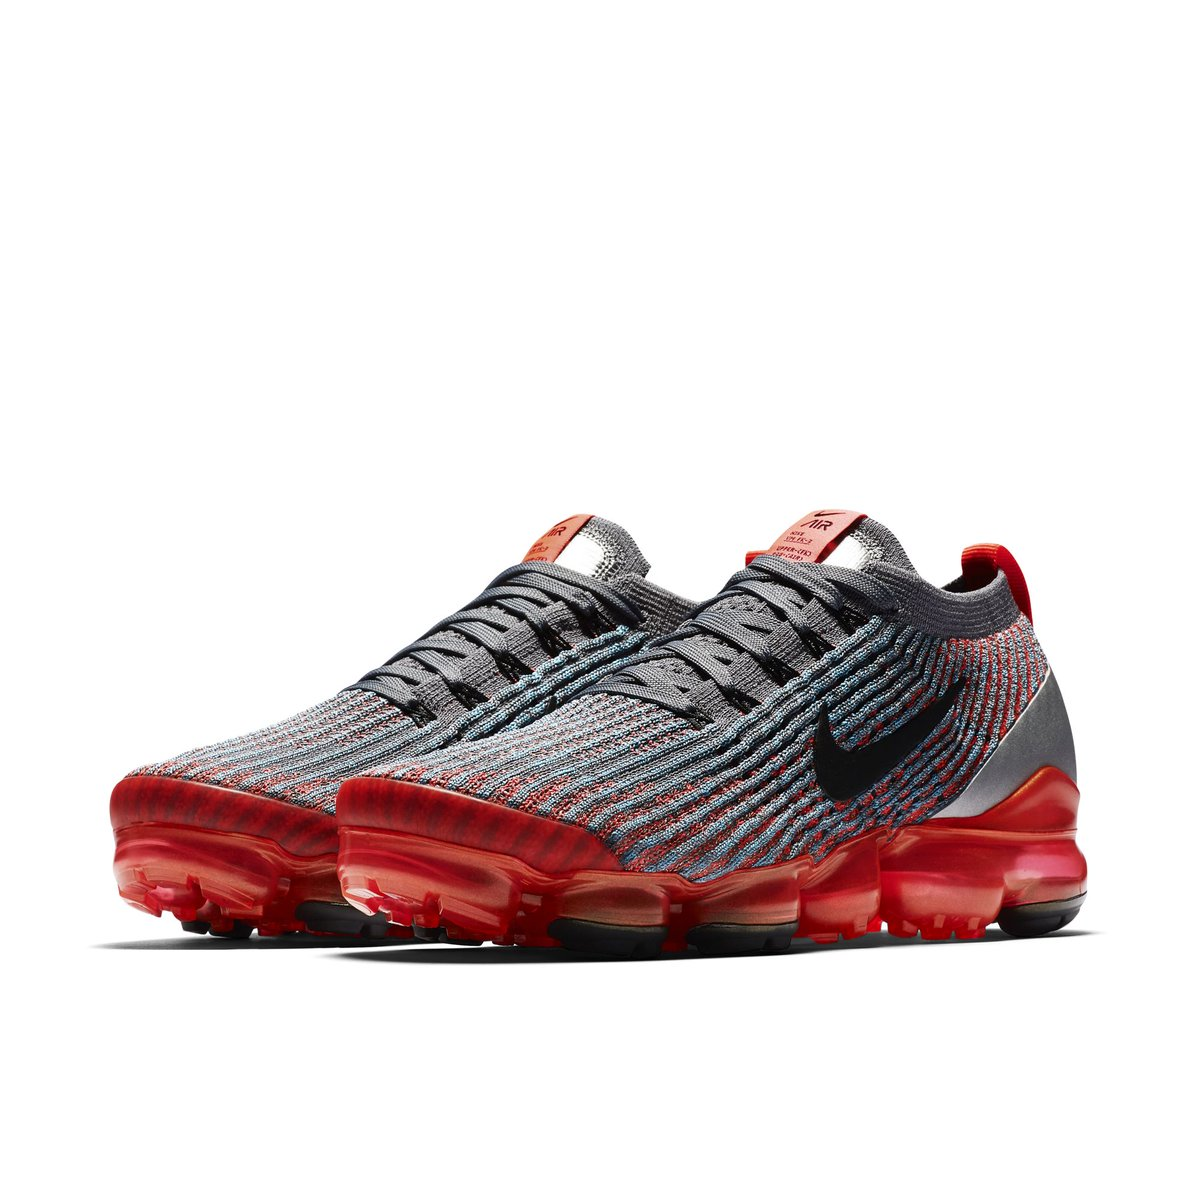 finest selection 842be 0814e WMNS AIR VAPORMAX FLYKNIT 3 LIGHT VIOLET/LIGHT VIOLET-WHITE